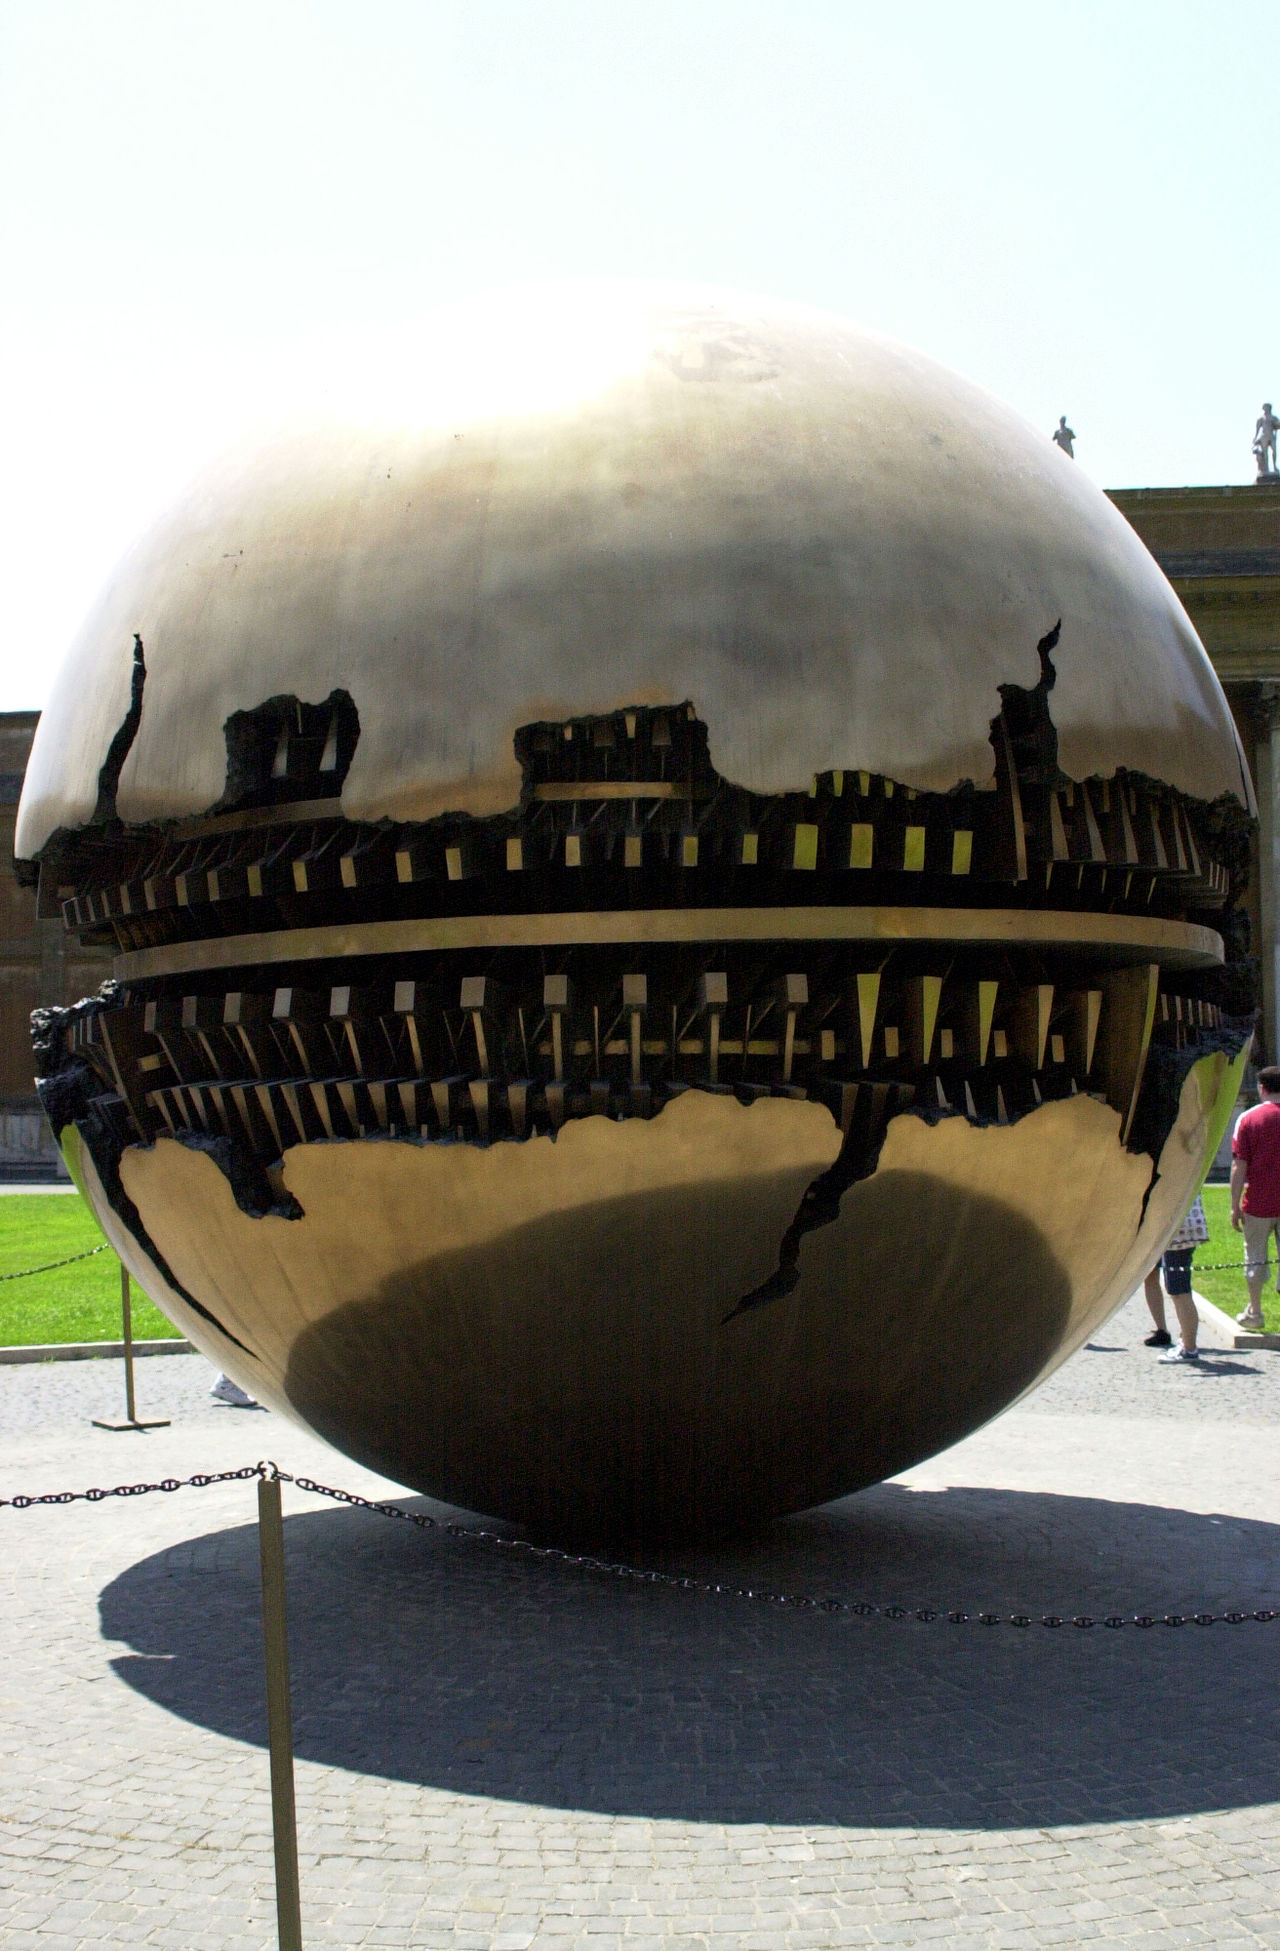 Look what has landed at the Vatican. Architecture Building Exterior Built Structure Clear Sky Day Mode Of Transport No People Outdoors Sky Vatican Art Vatican Courtyard Vatican Museum VaticanCity VaticanMuseum